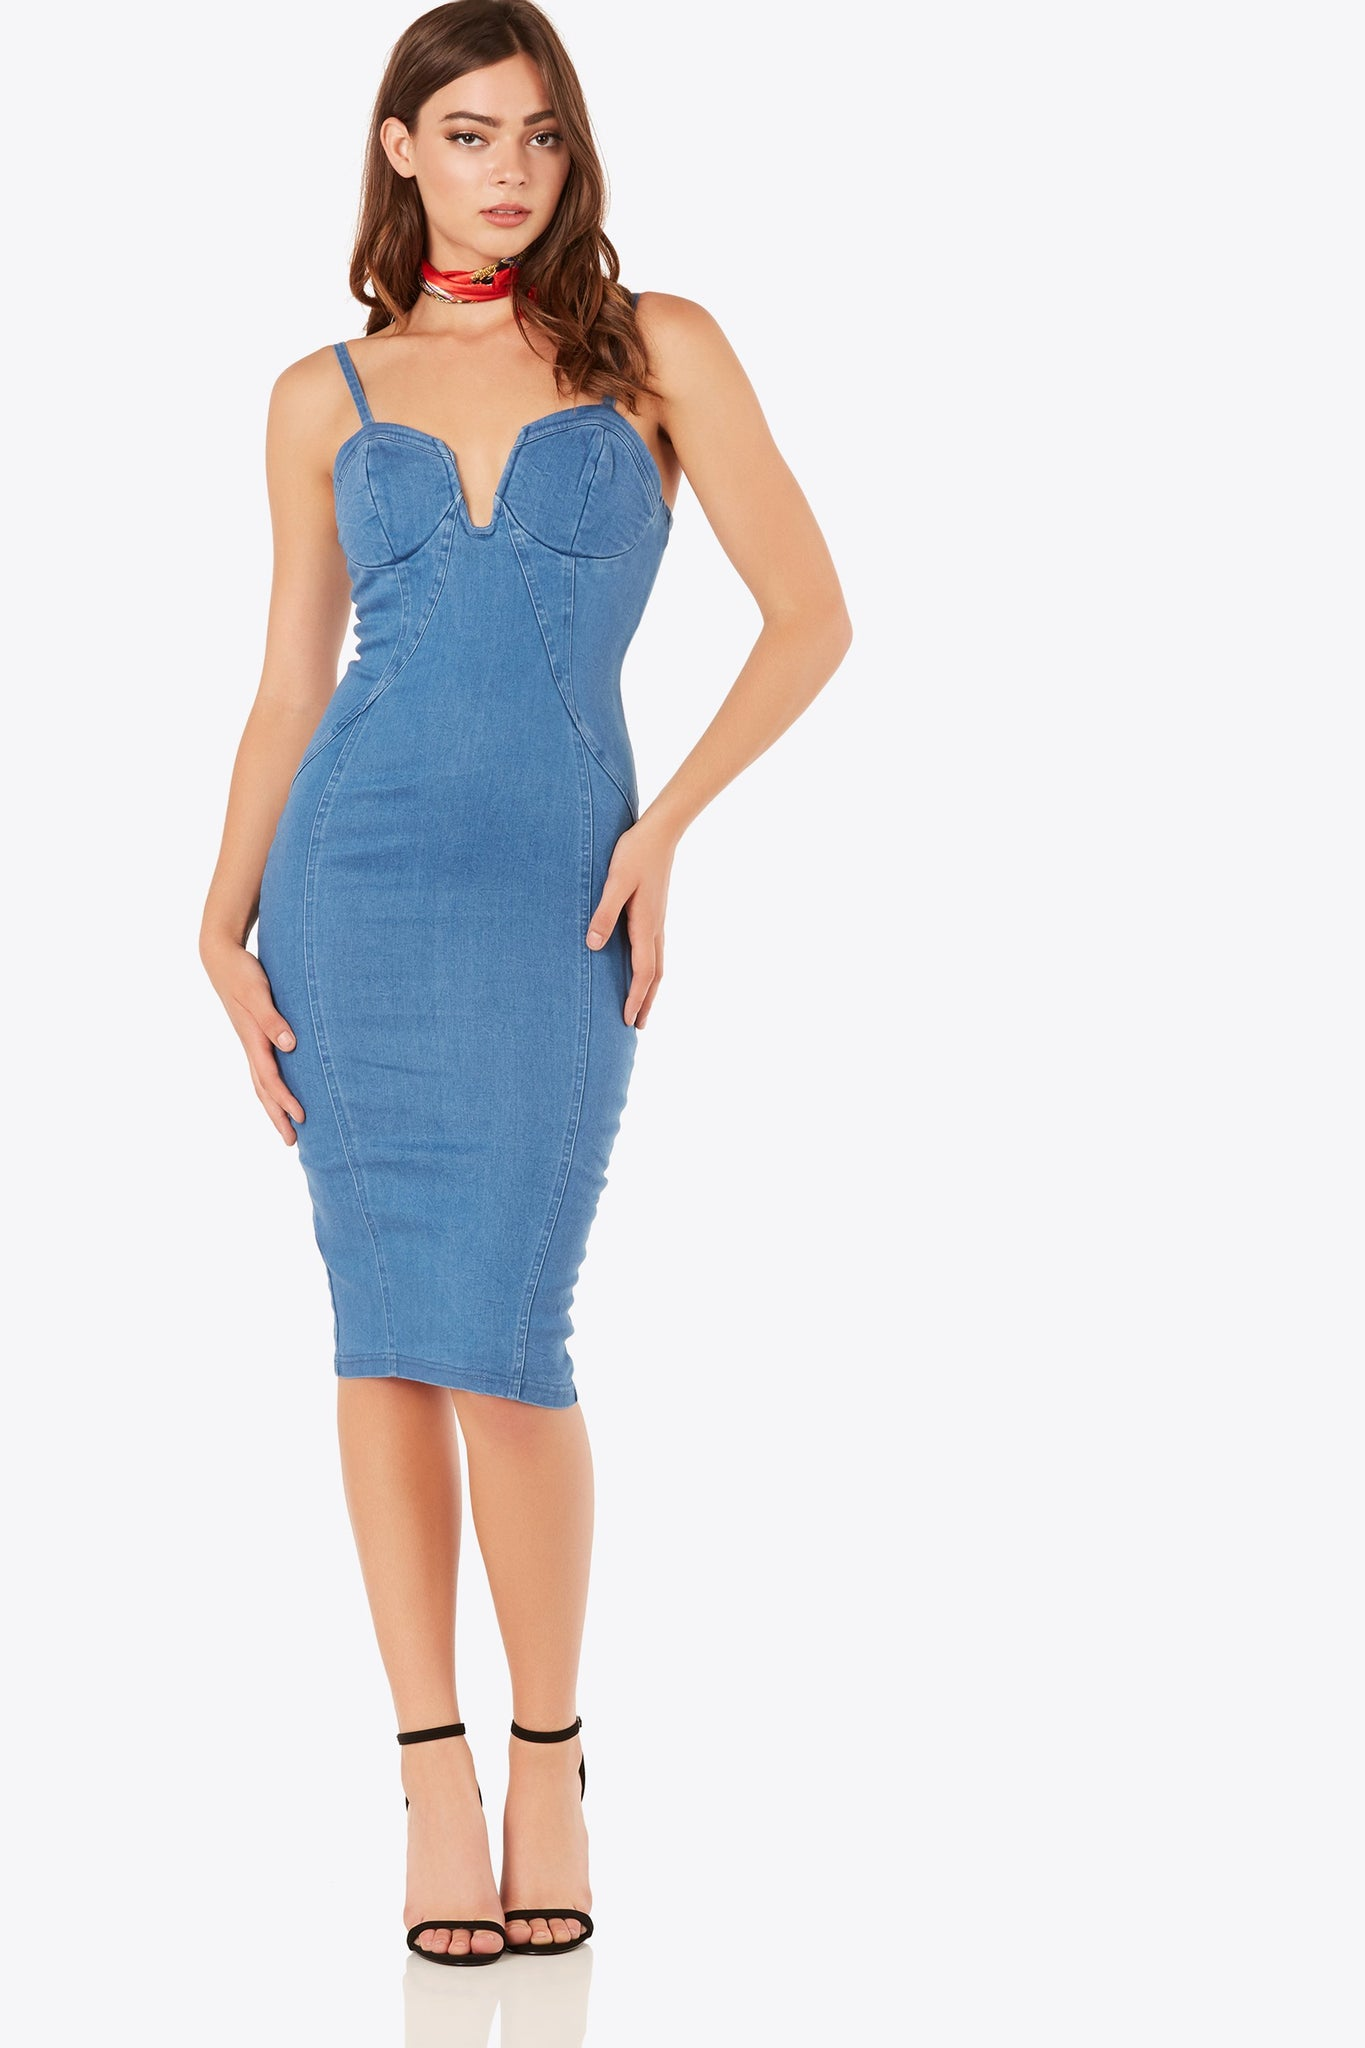 Sleeveless bodycon midi dress with amazing stretch. Slightly padded bust with wired cut out detailing. Back zip closure and straight hem finish.